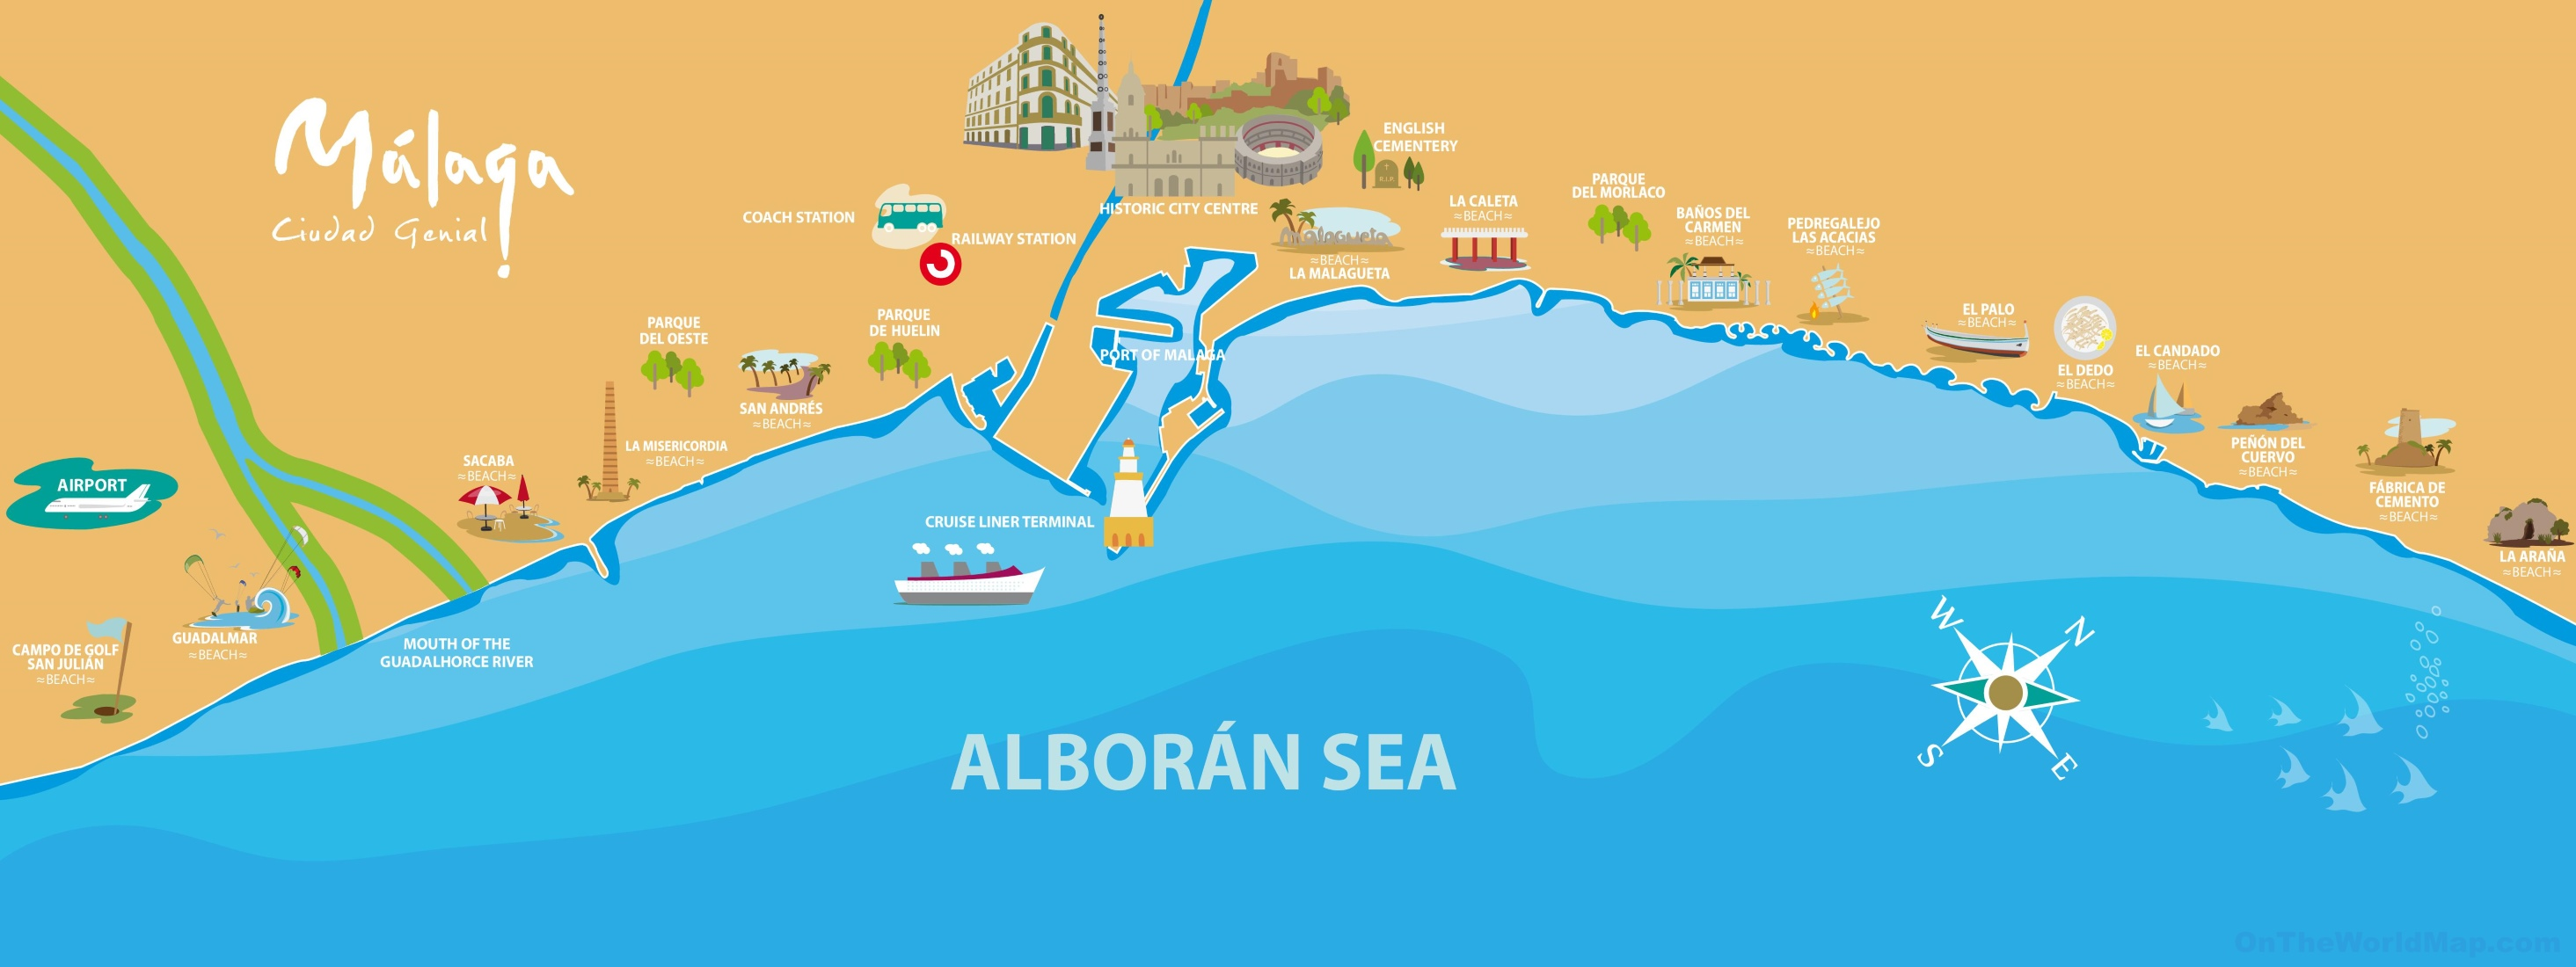 Malaga beaches map